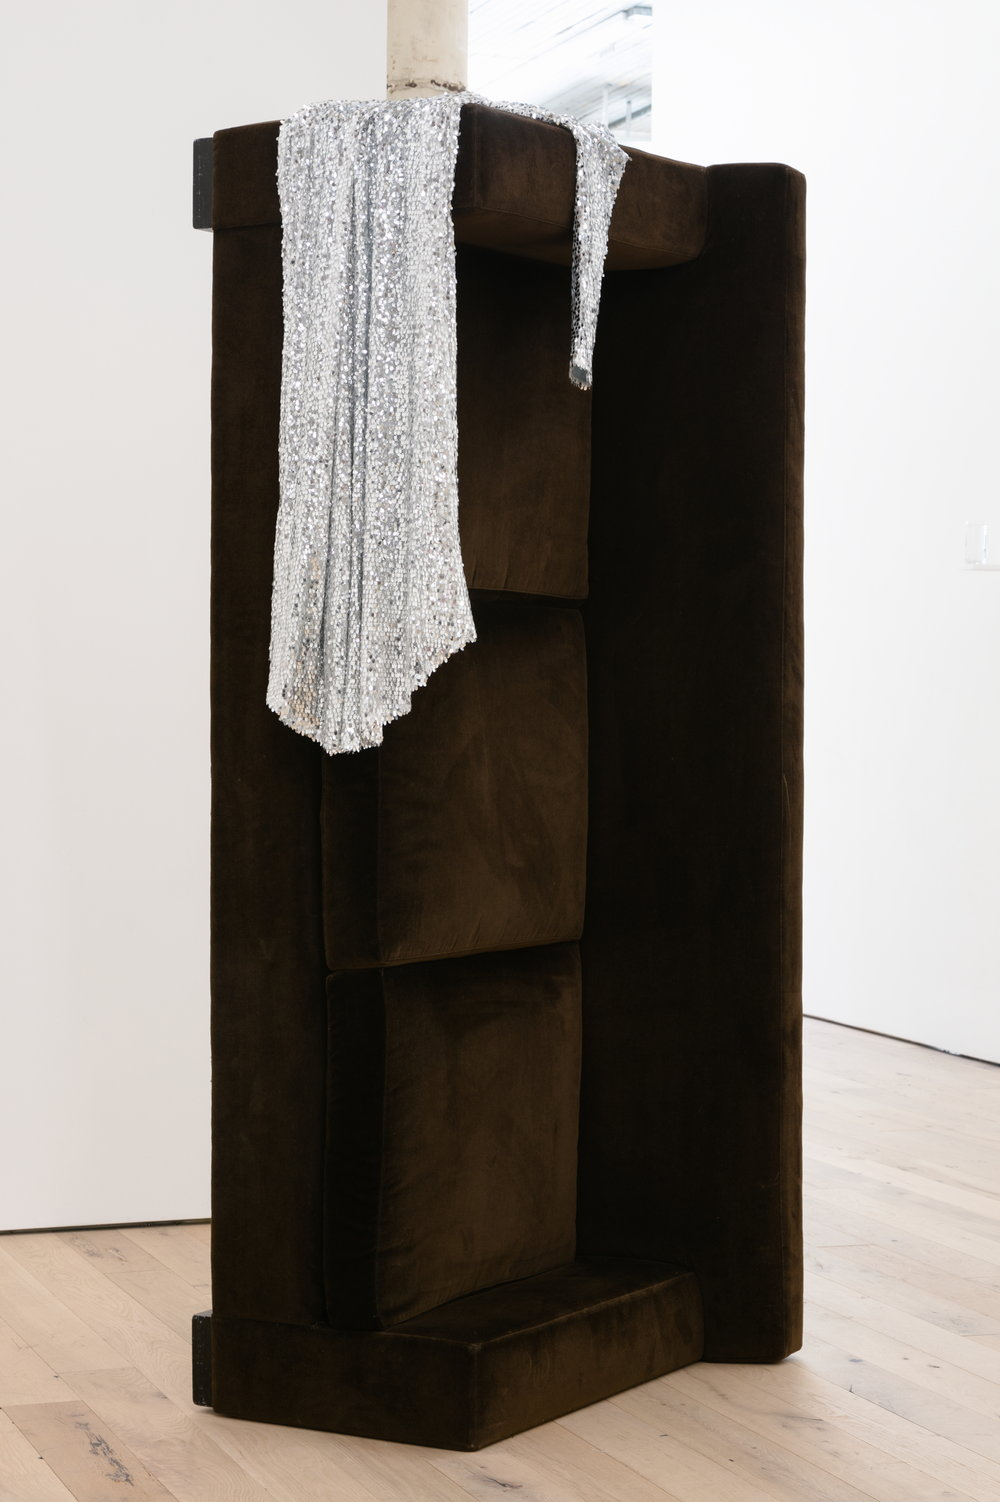 Kayode Ojo,  Untitled , 2017, dark chocolate ABC Home sofa / couch, women silver sequins long sleeves formal evening prom maxi cocktail party dress, 90 × 40 × 30 in.